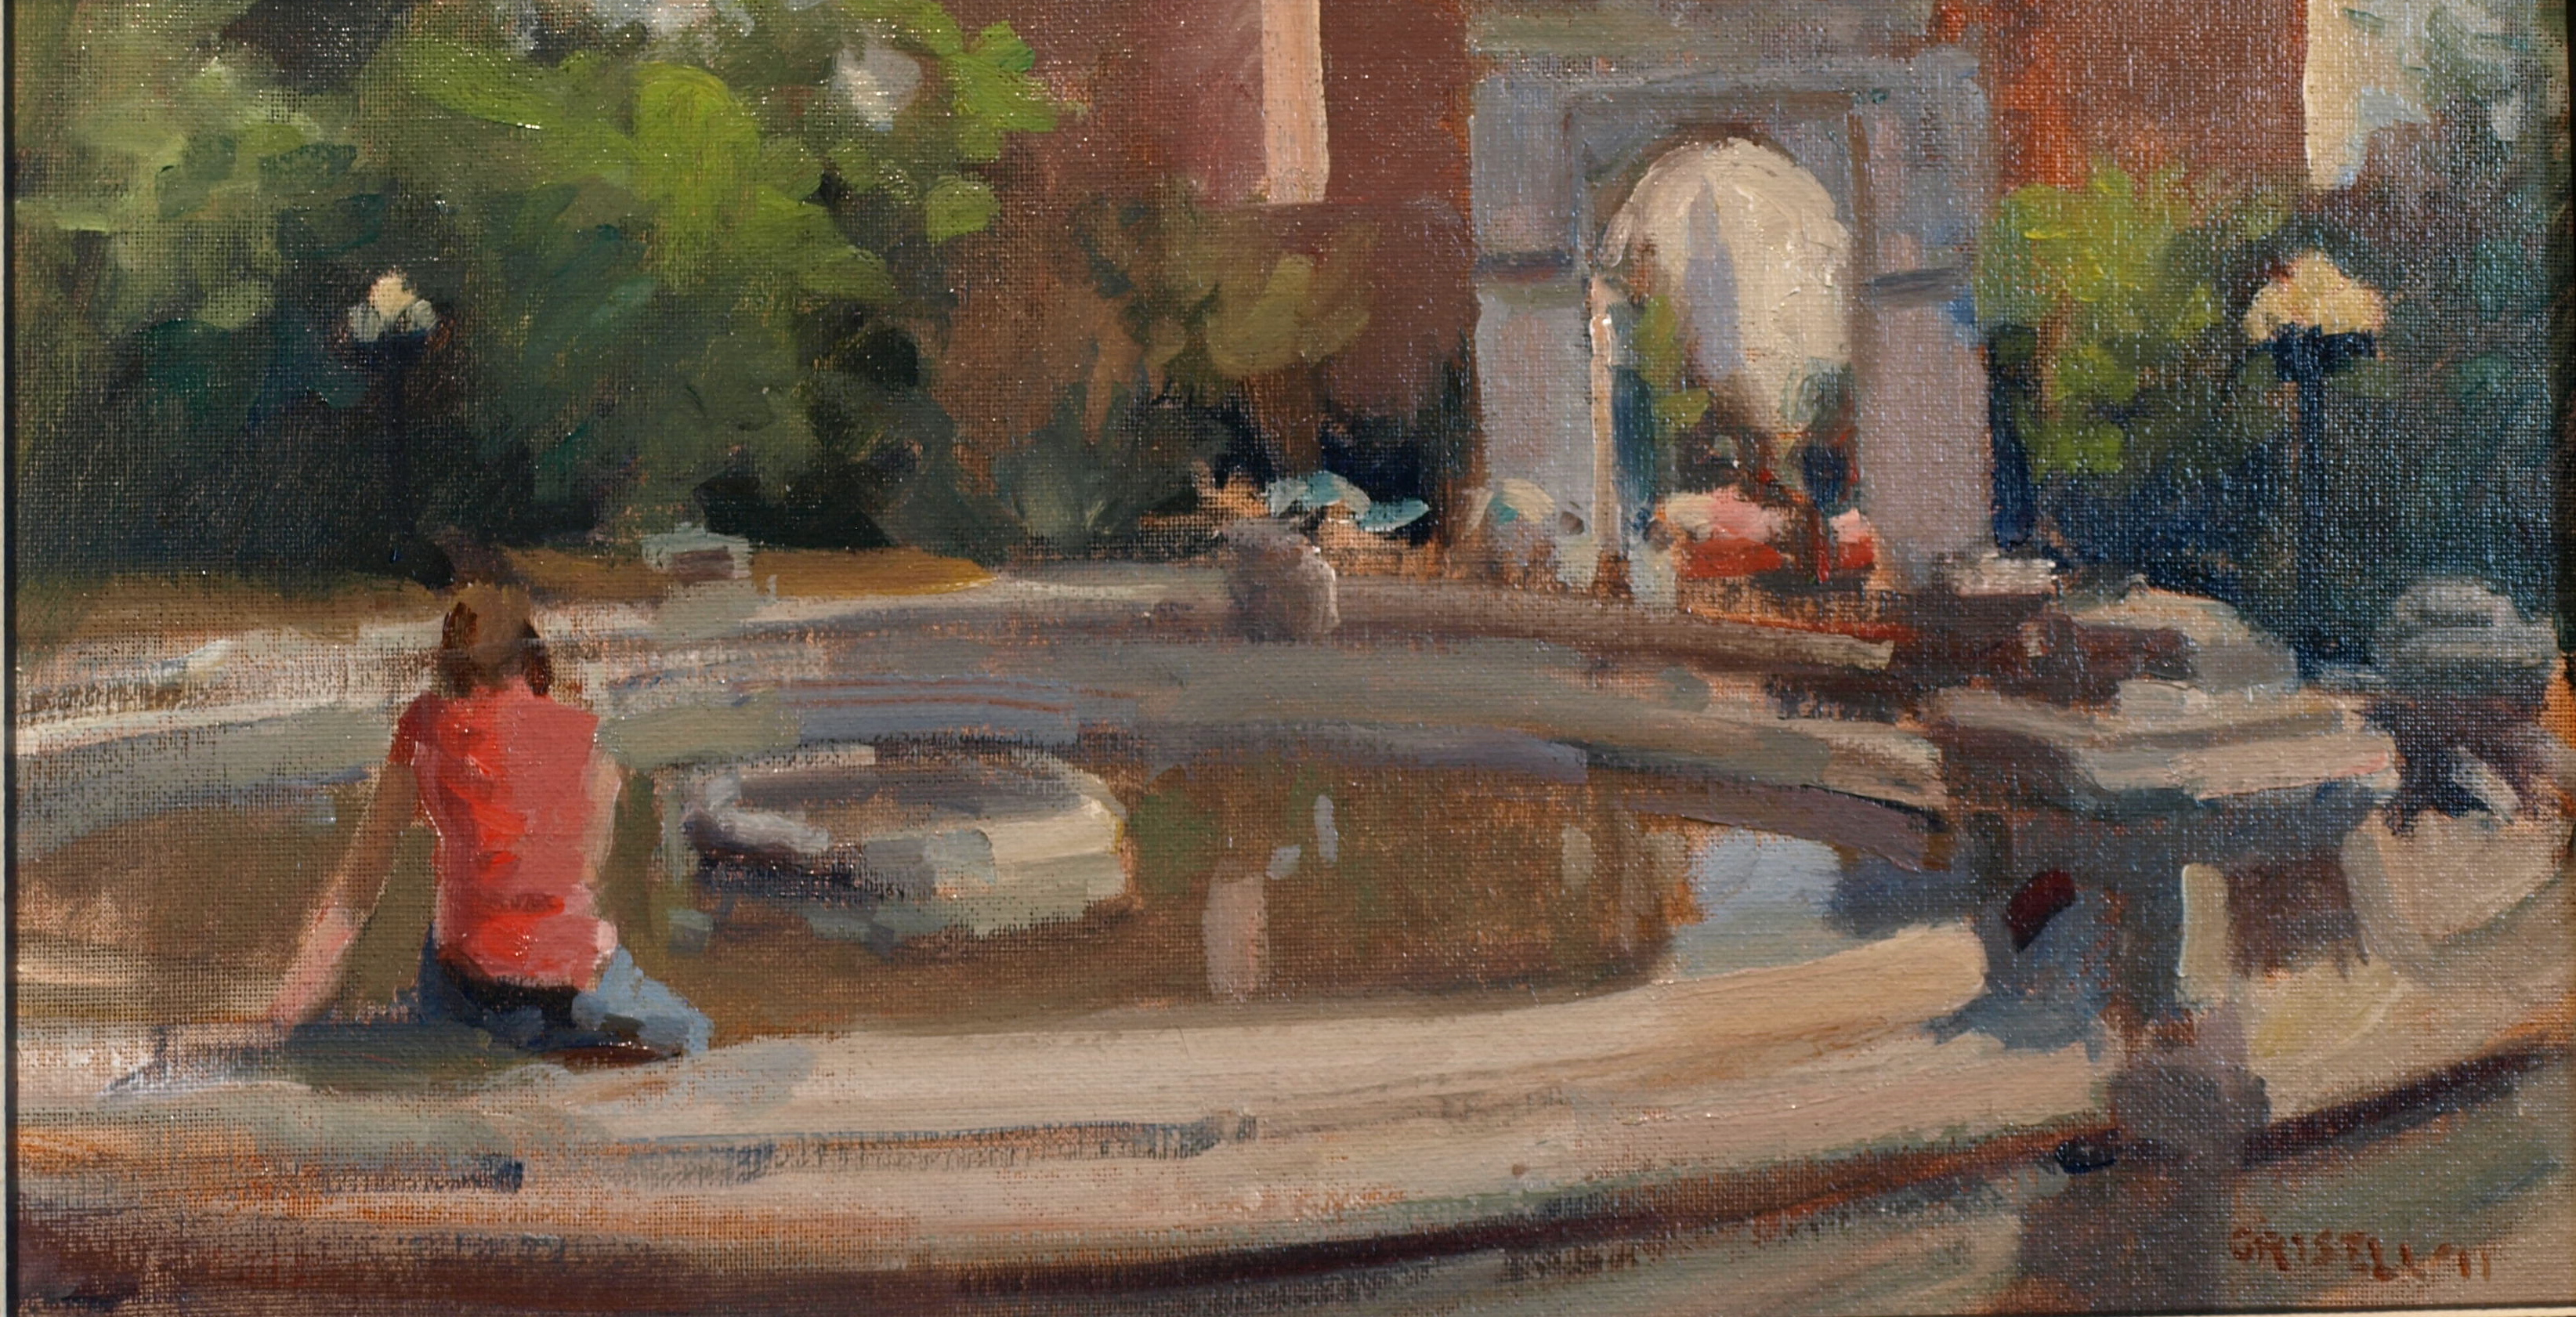 Washington Square, Oil on Canvas on Panel, 9 x 16 Inches, by Susan Grisell, $275